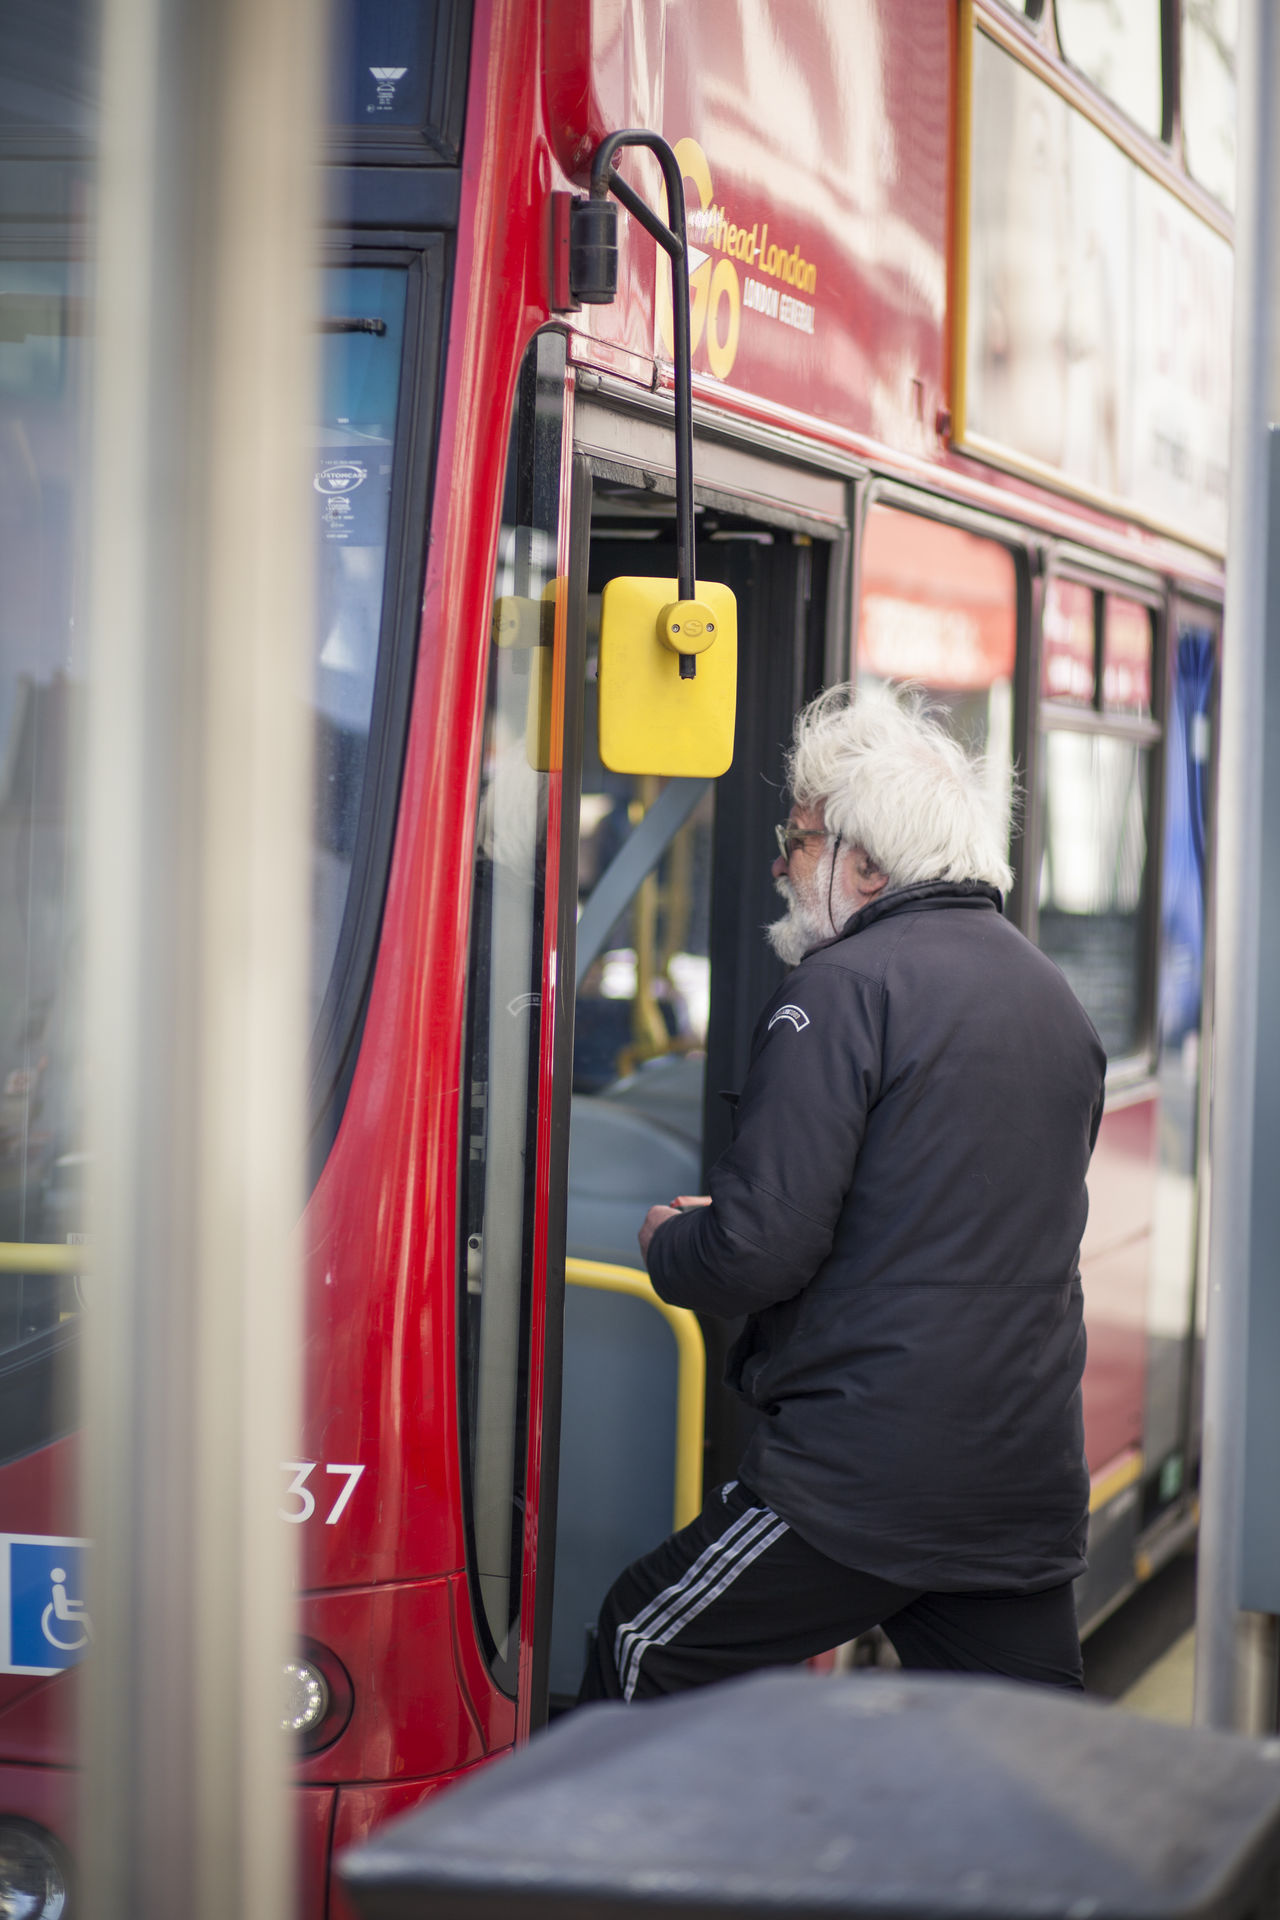 Adult Adults Only Bus Stop City Day London Lifestyle One Man Only One Person Only Men Outdoors Overcoat Passenger People Public Transportation Sitting Subway Train Train - Vehicle Warm Clothing